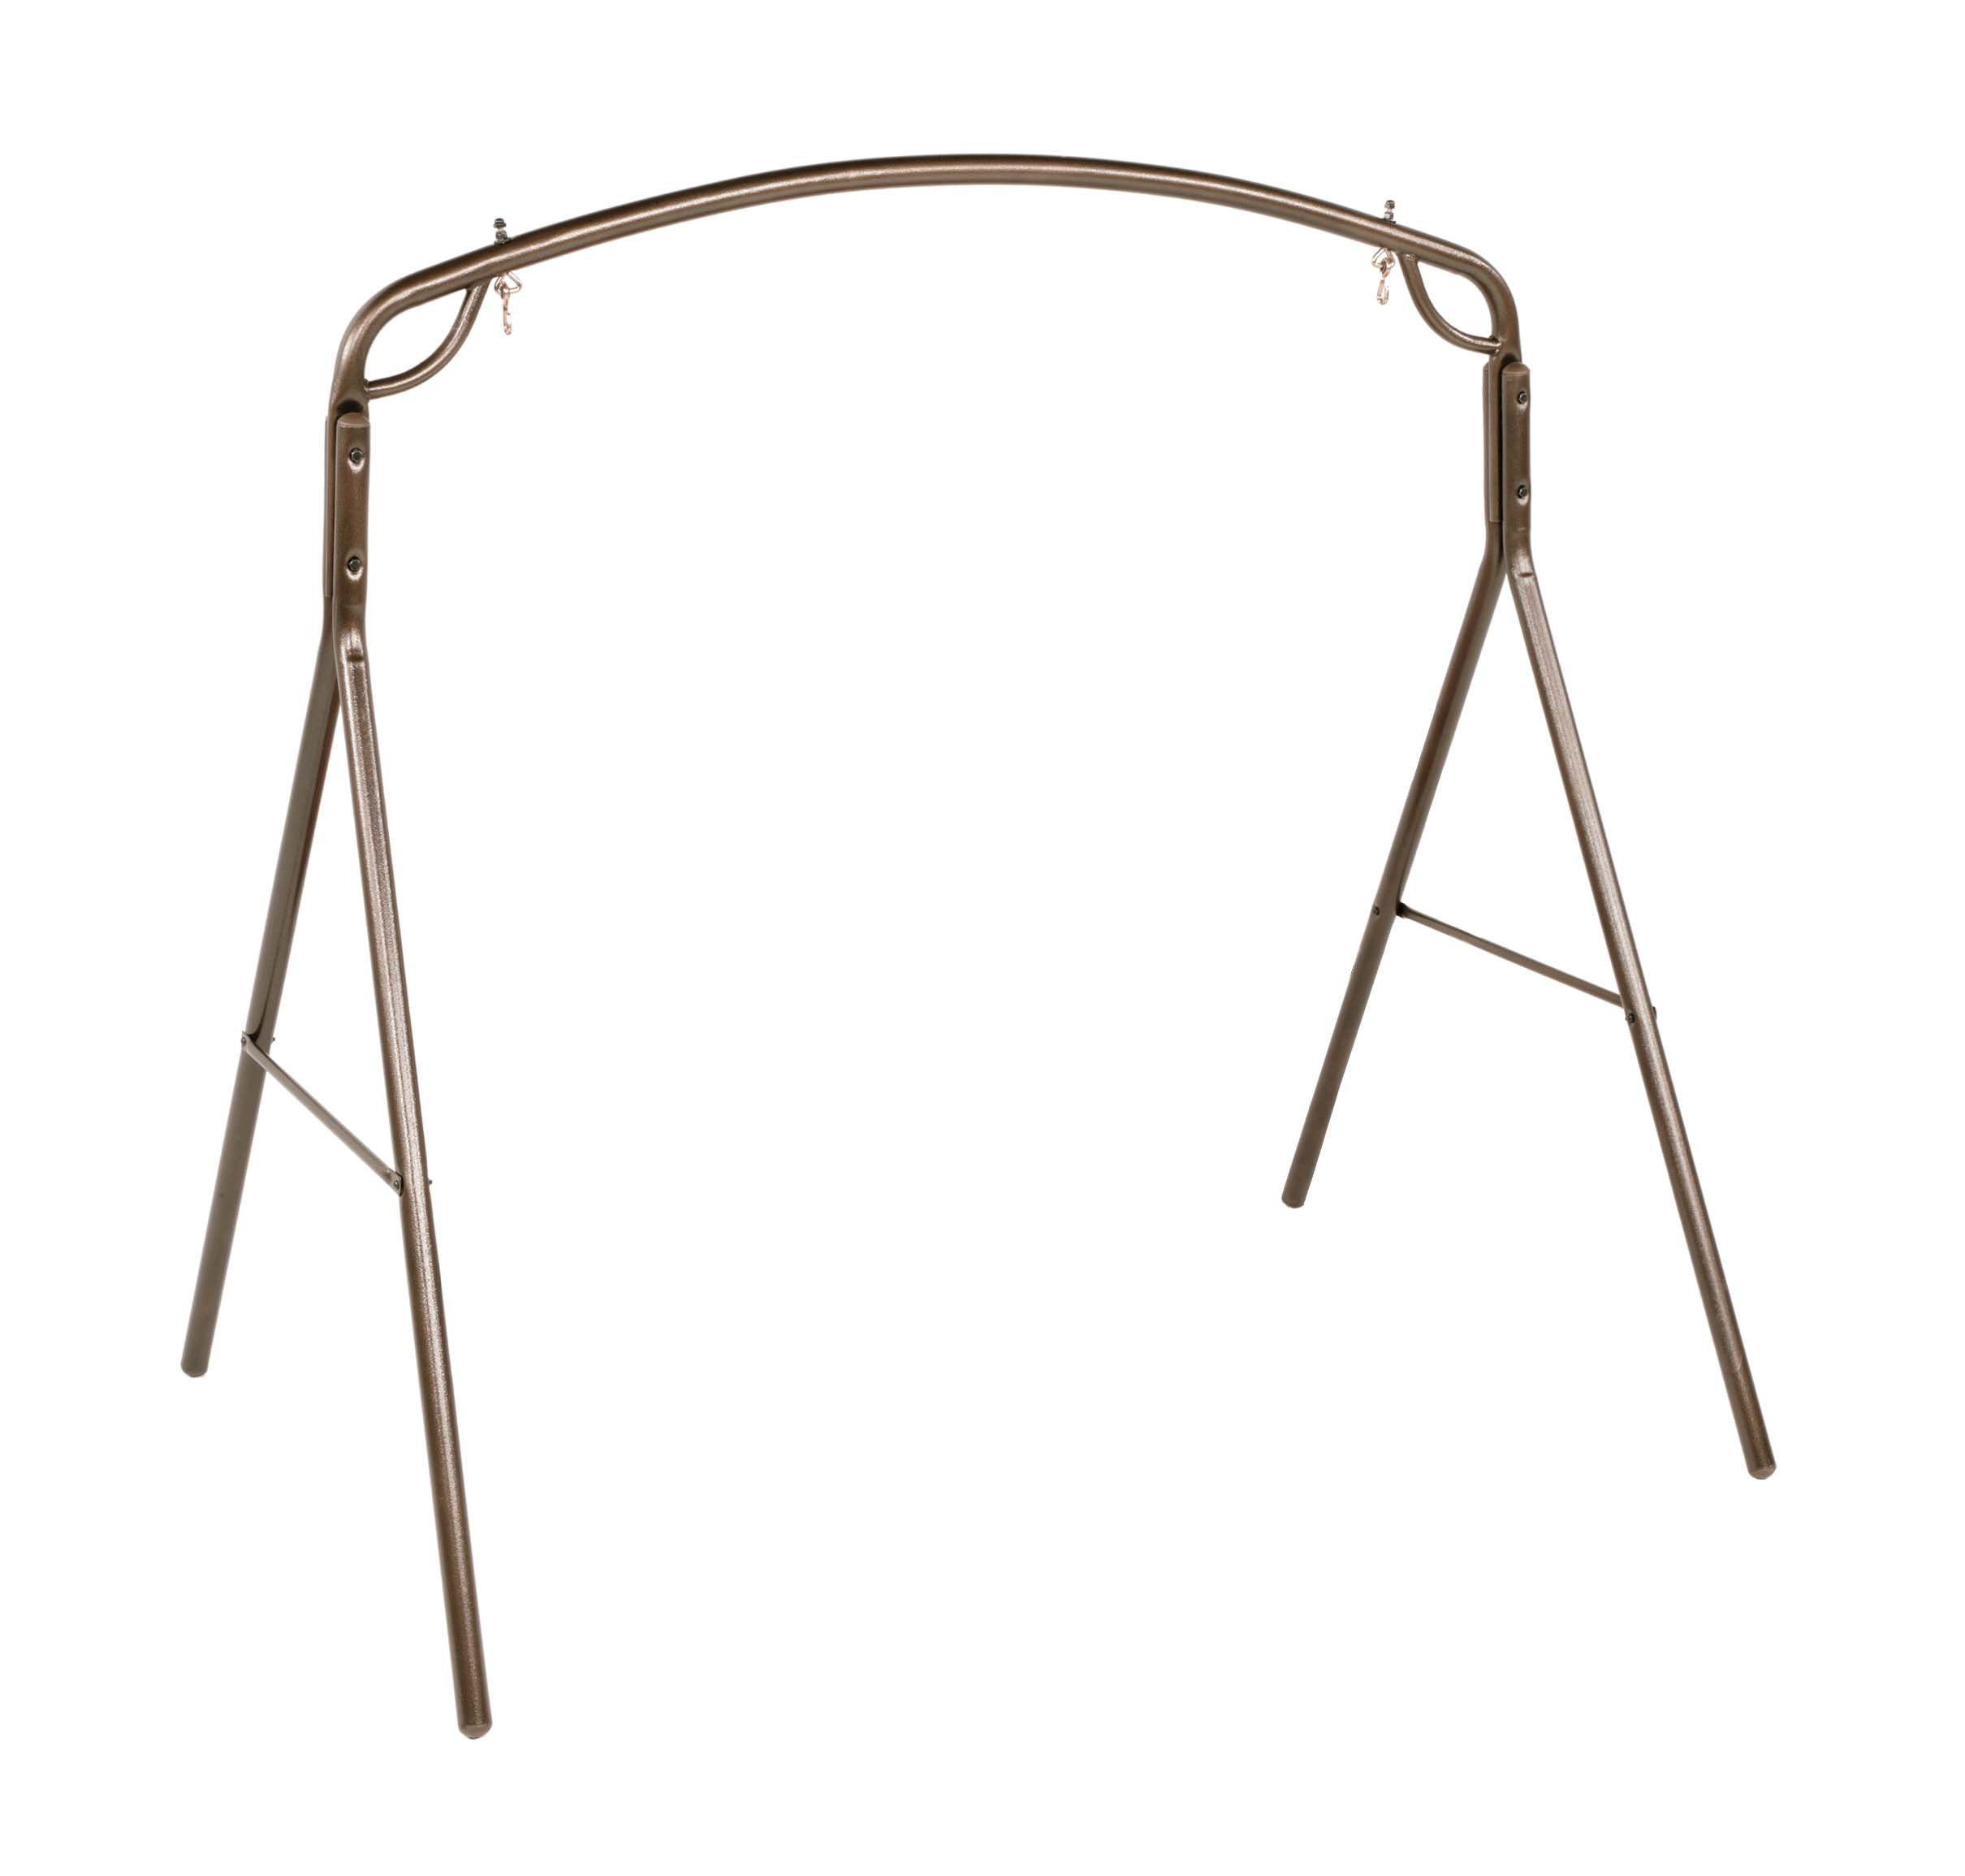 Woodlawn Swing Frame - Free Shipping Today - Overstock - 13925232